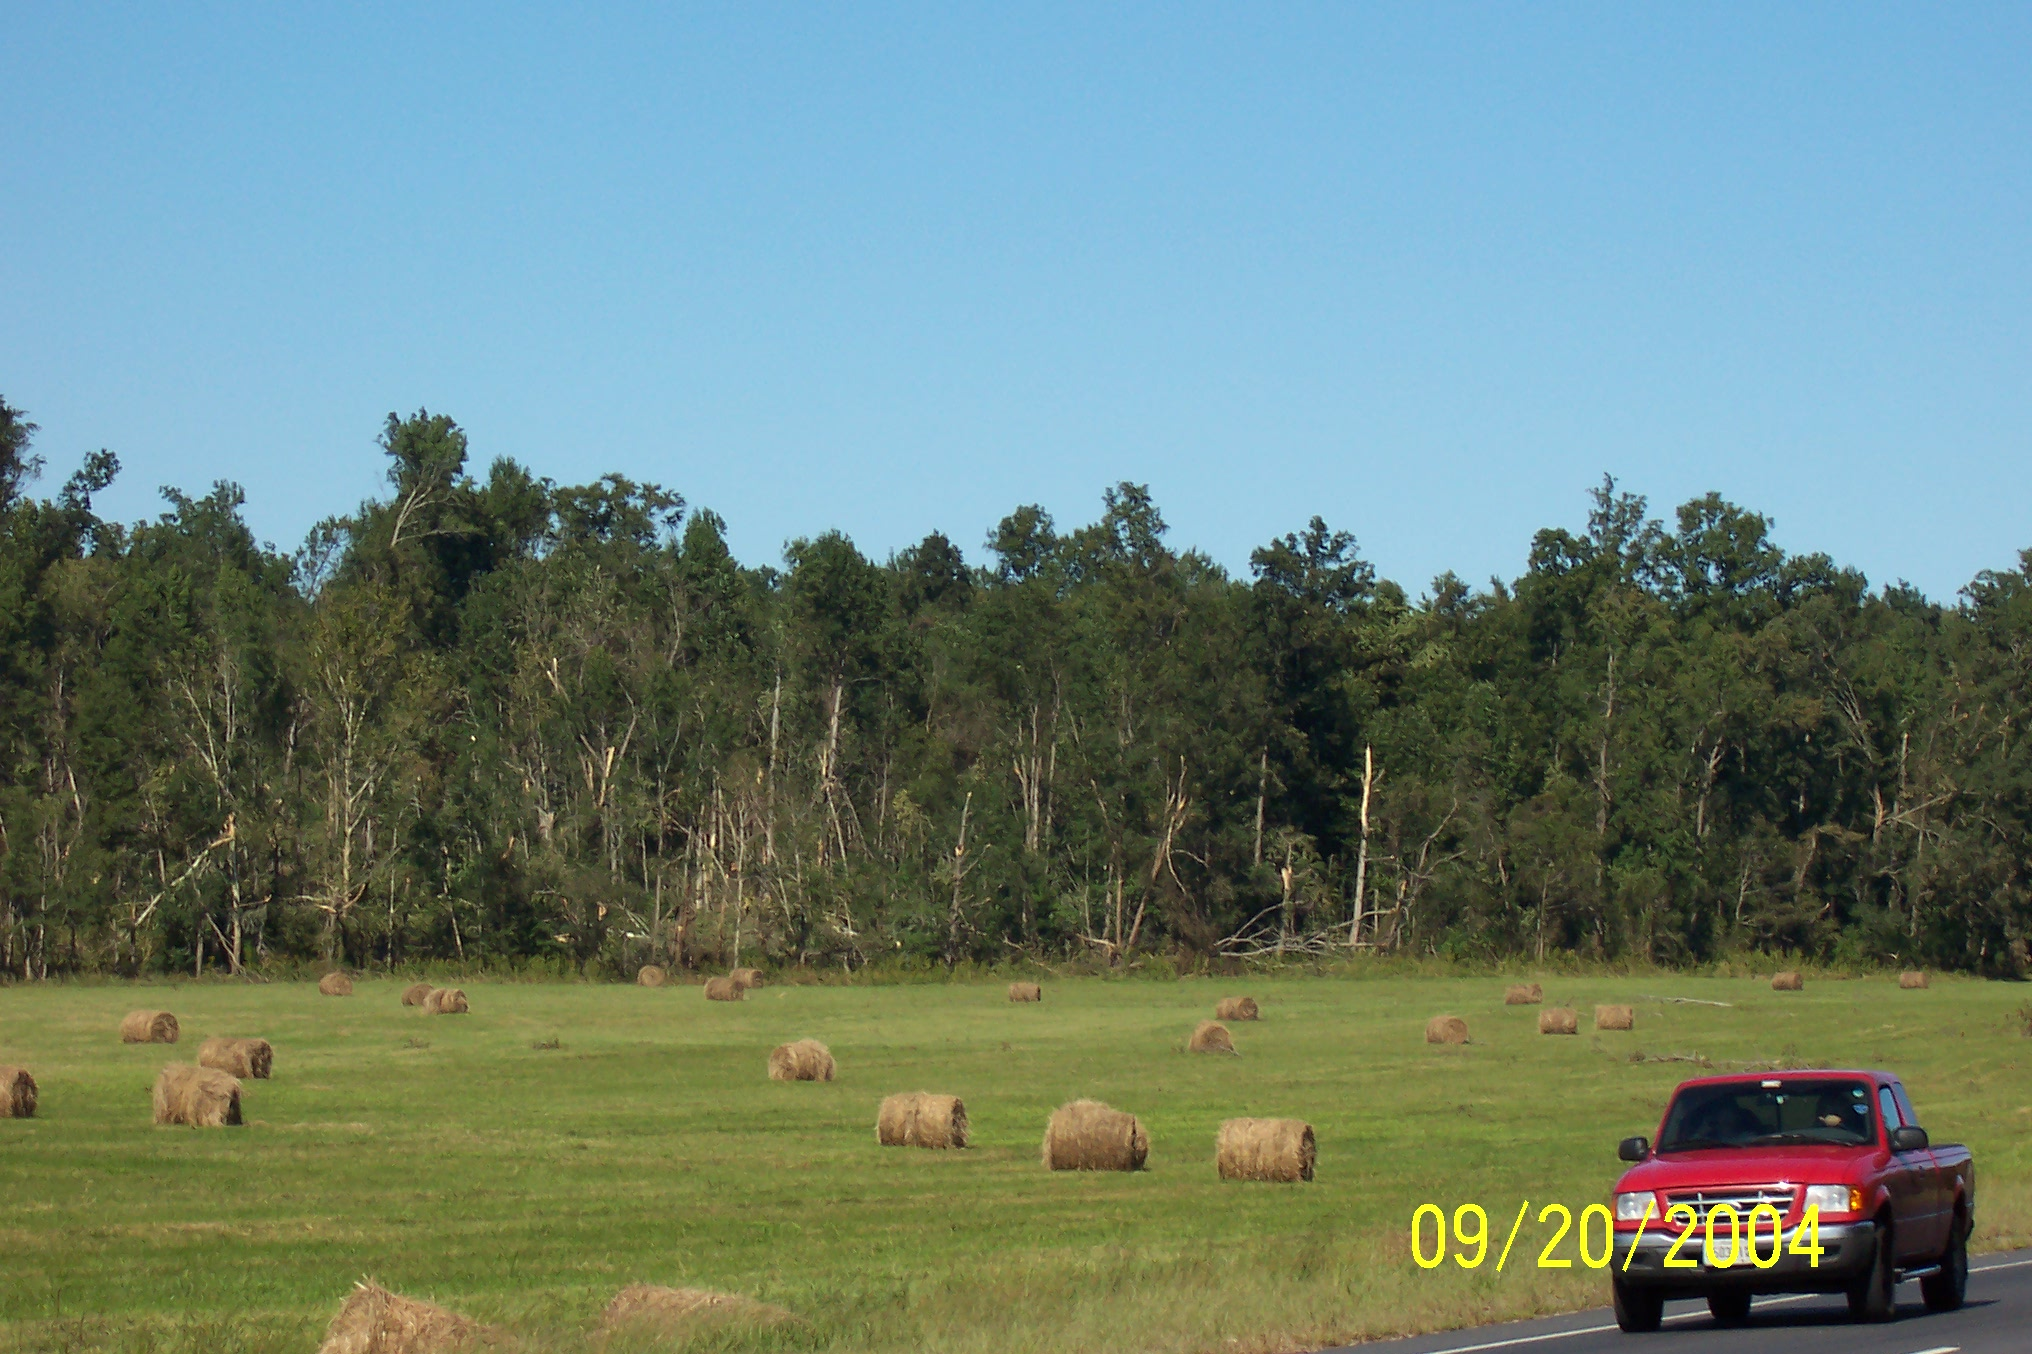 /images/lwx/sept17tornadoes/KingGeorge_Picture3.jpg